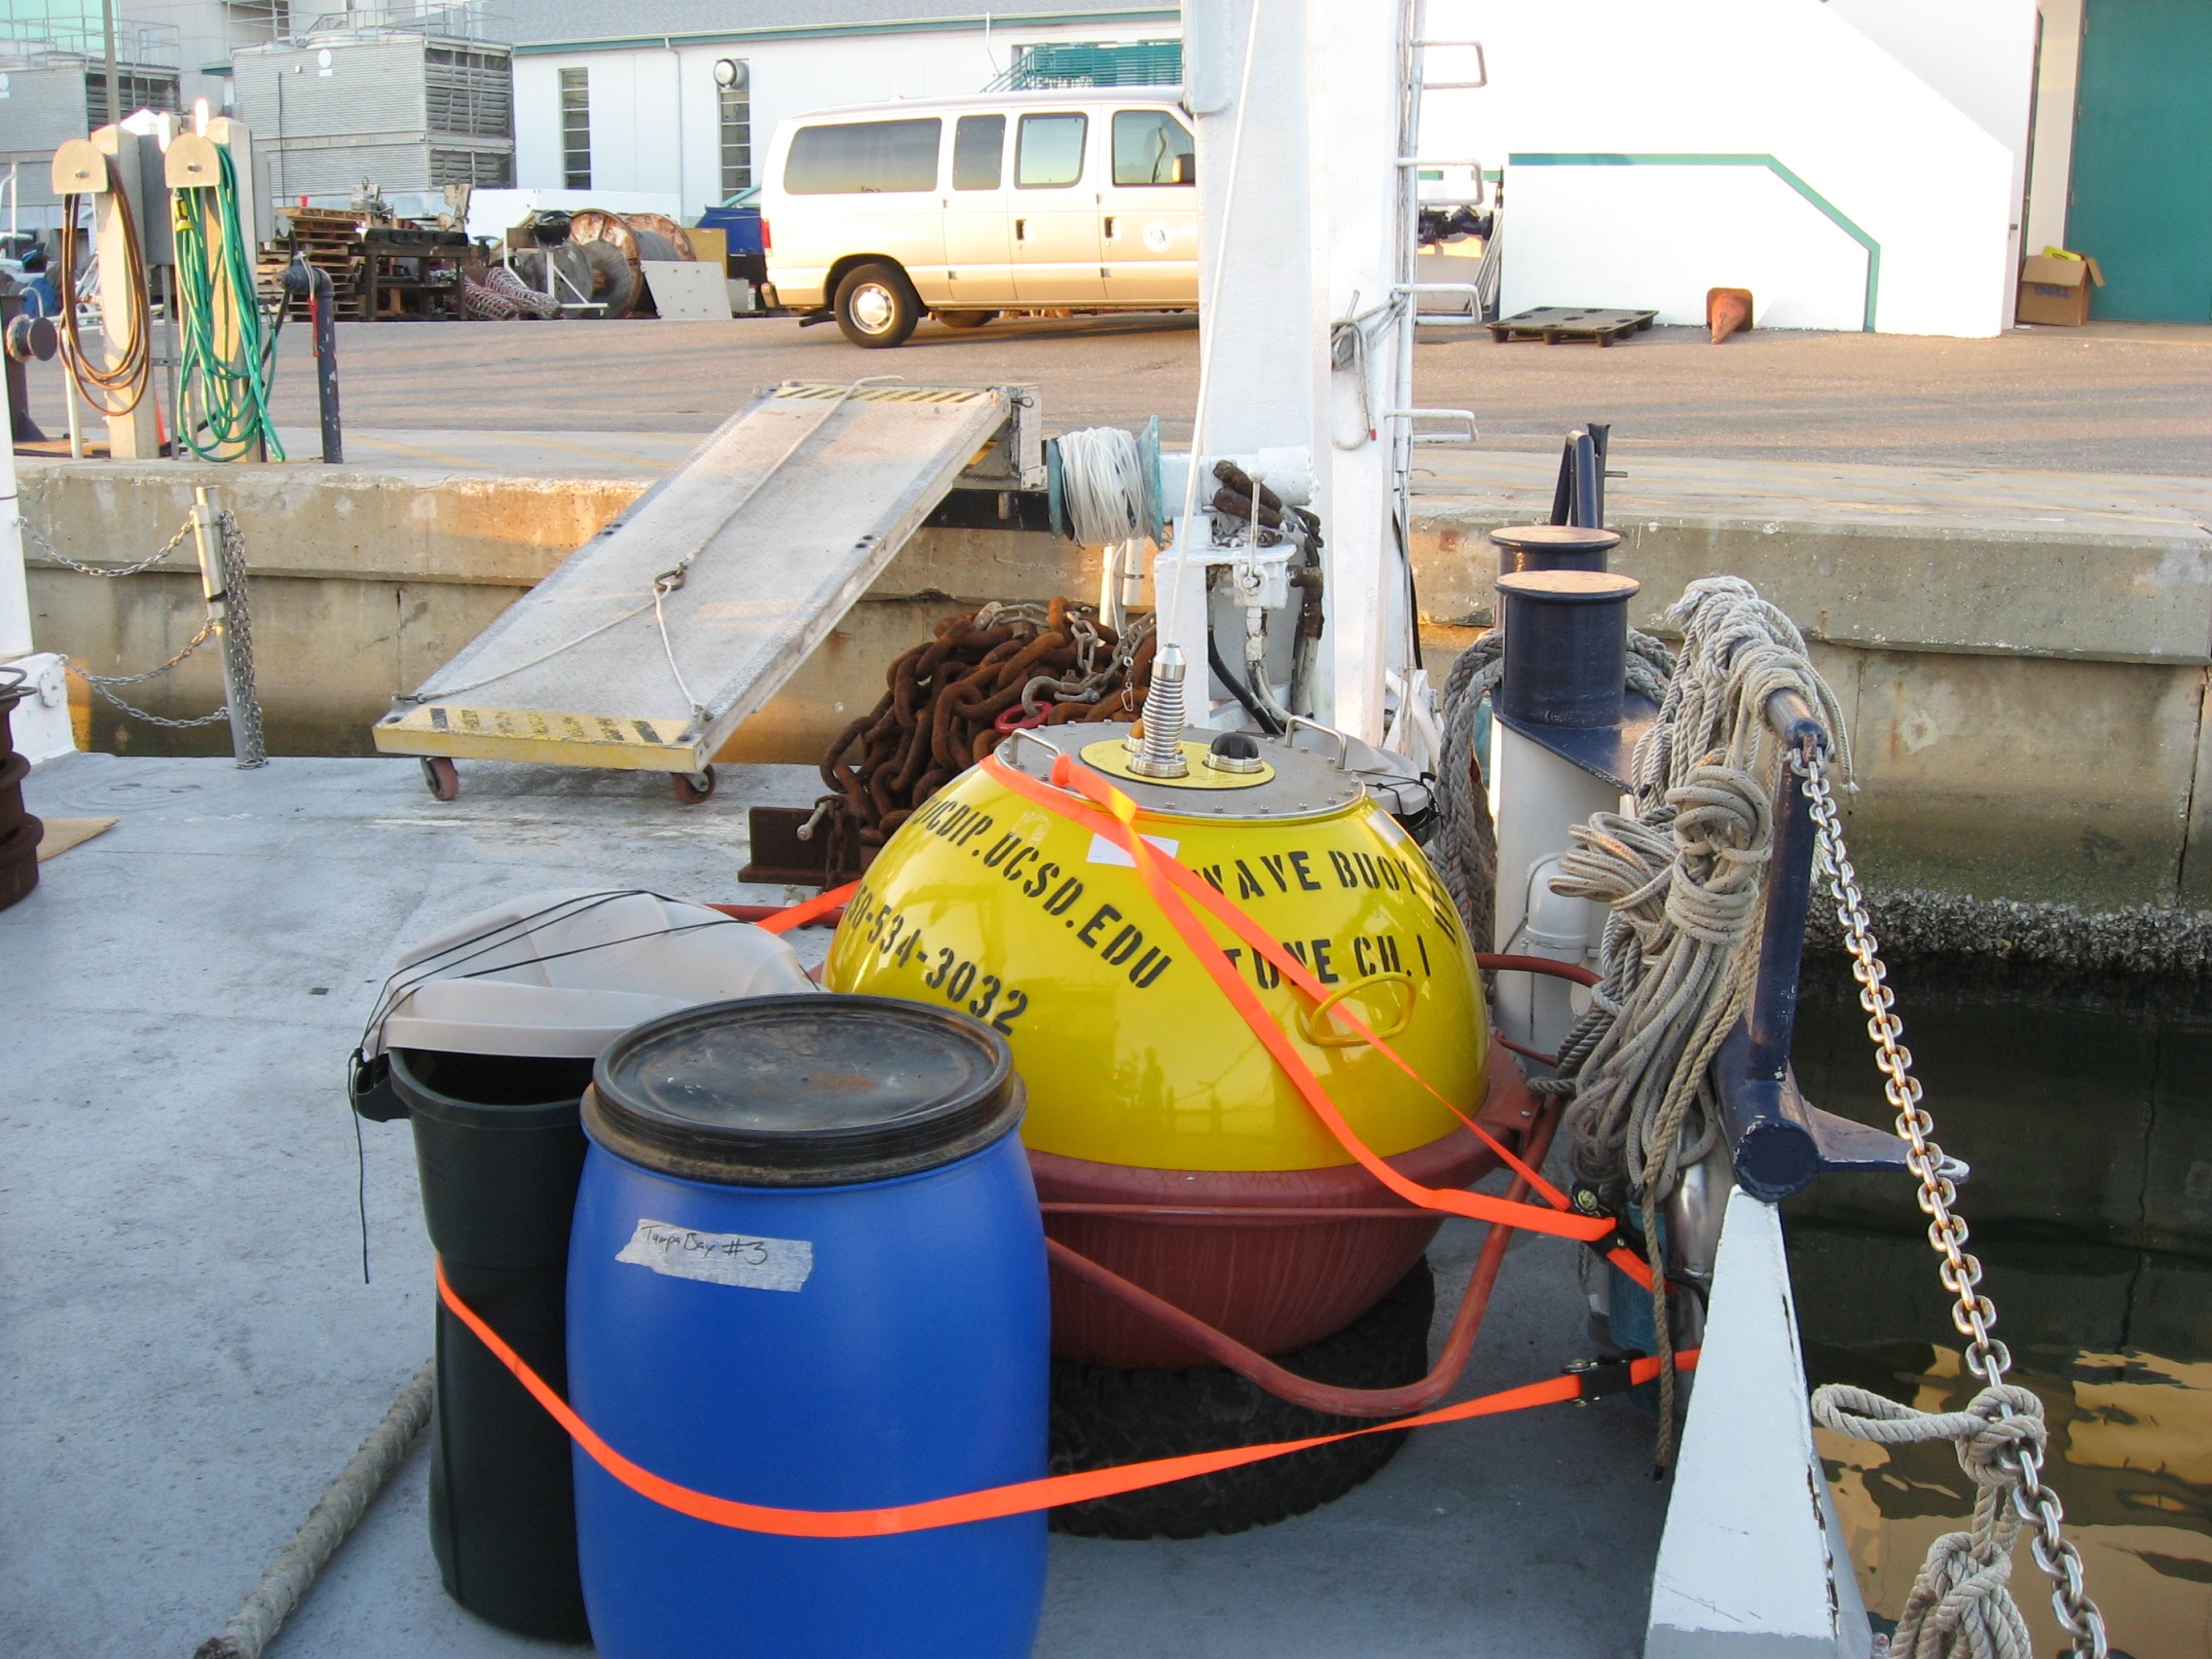 Buoy and rig ready for deployment